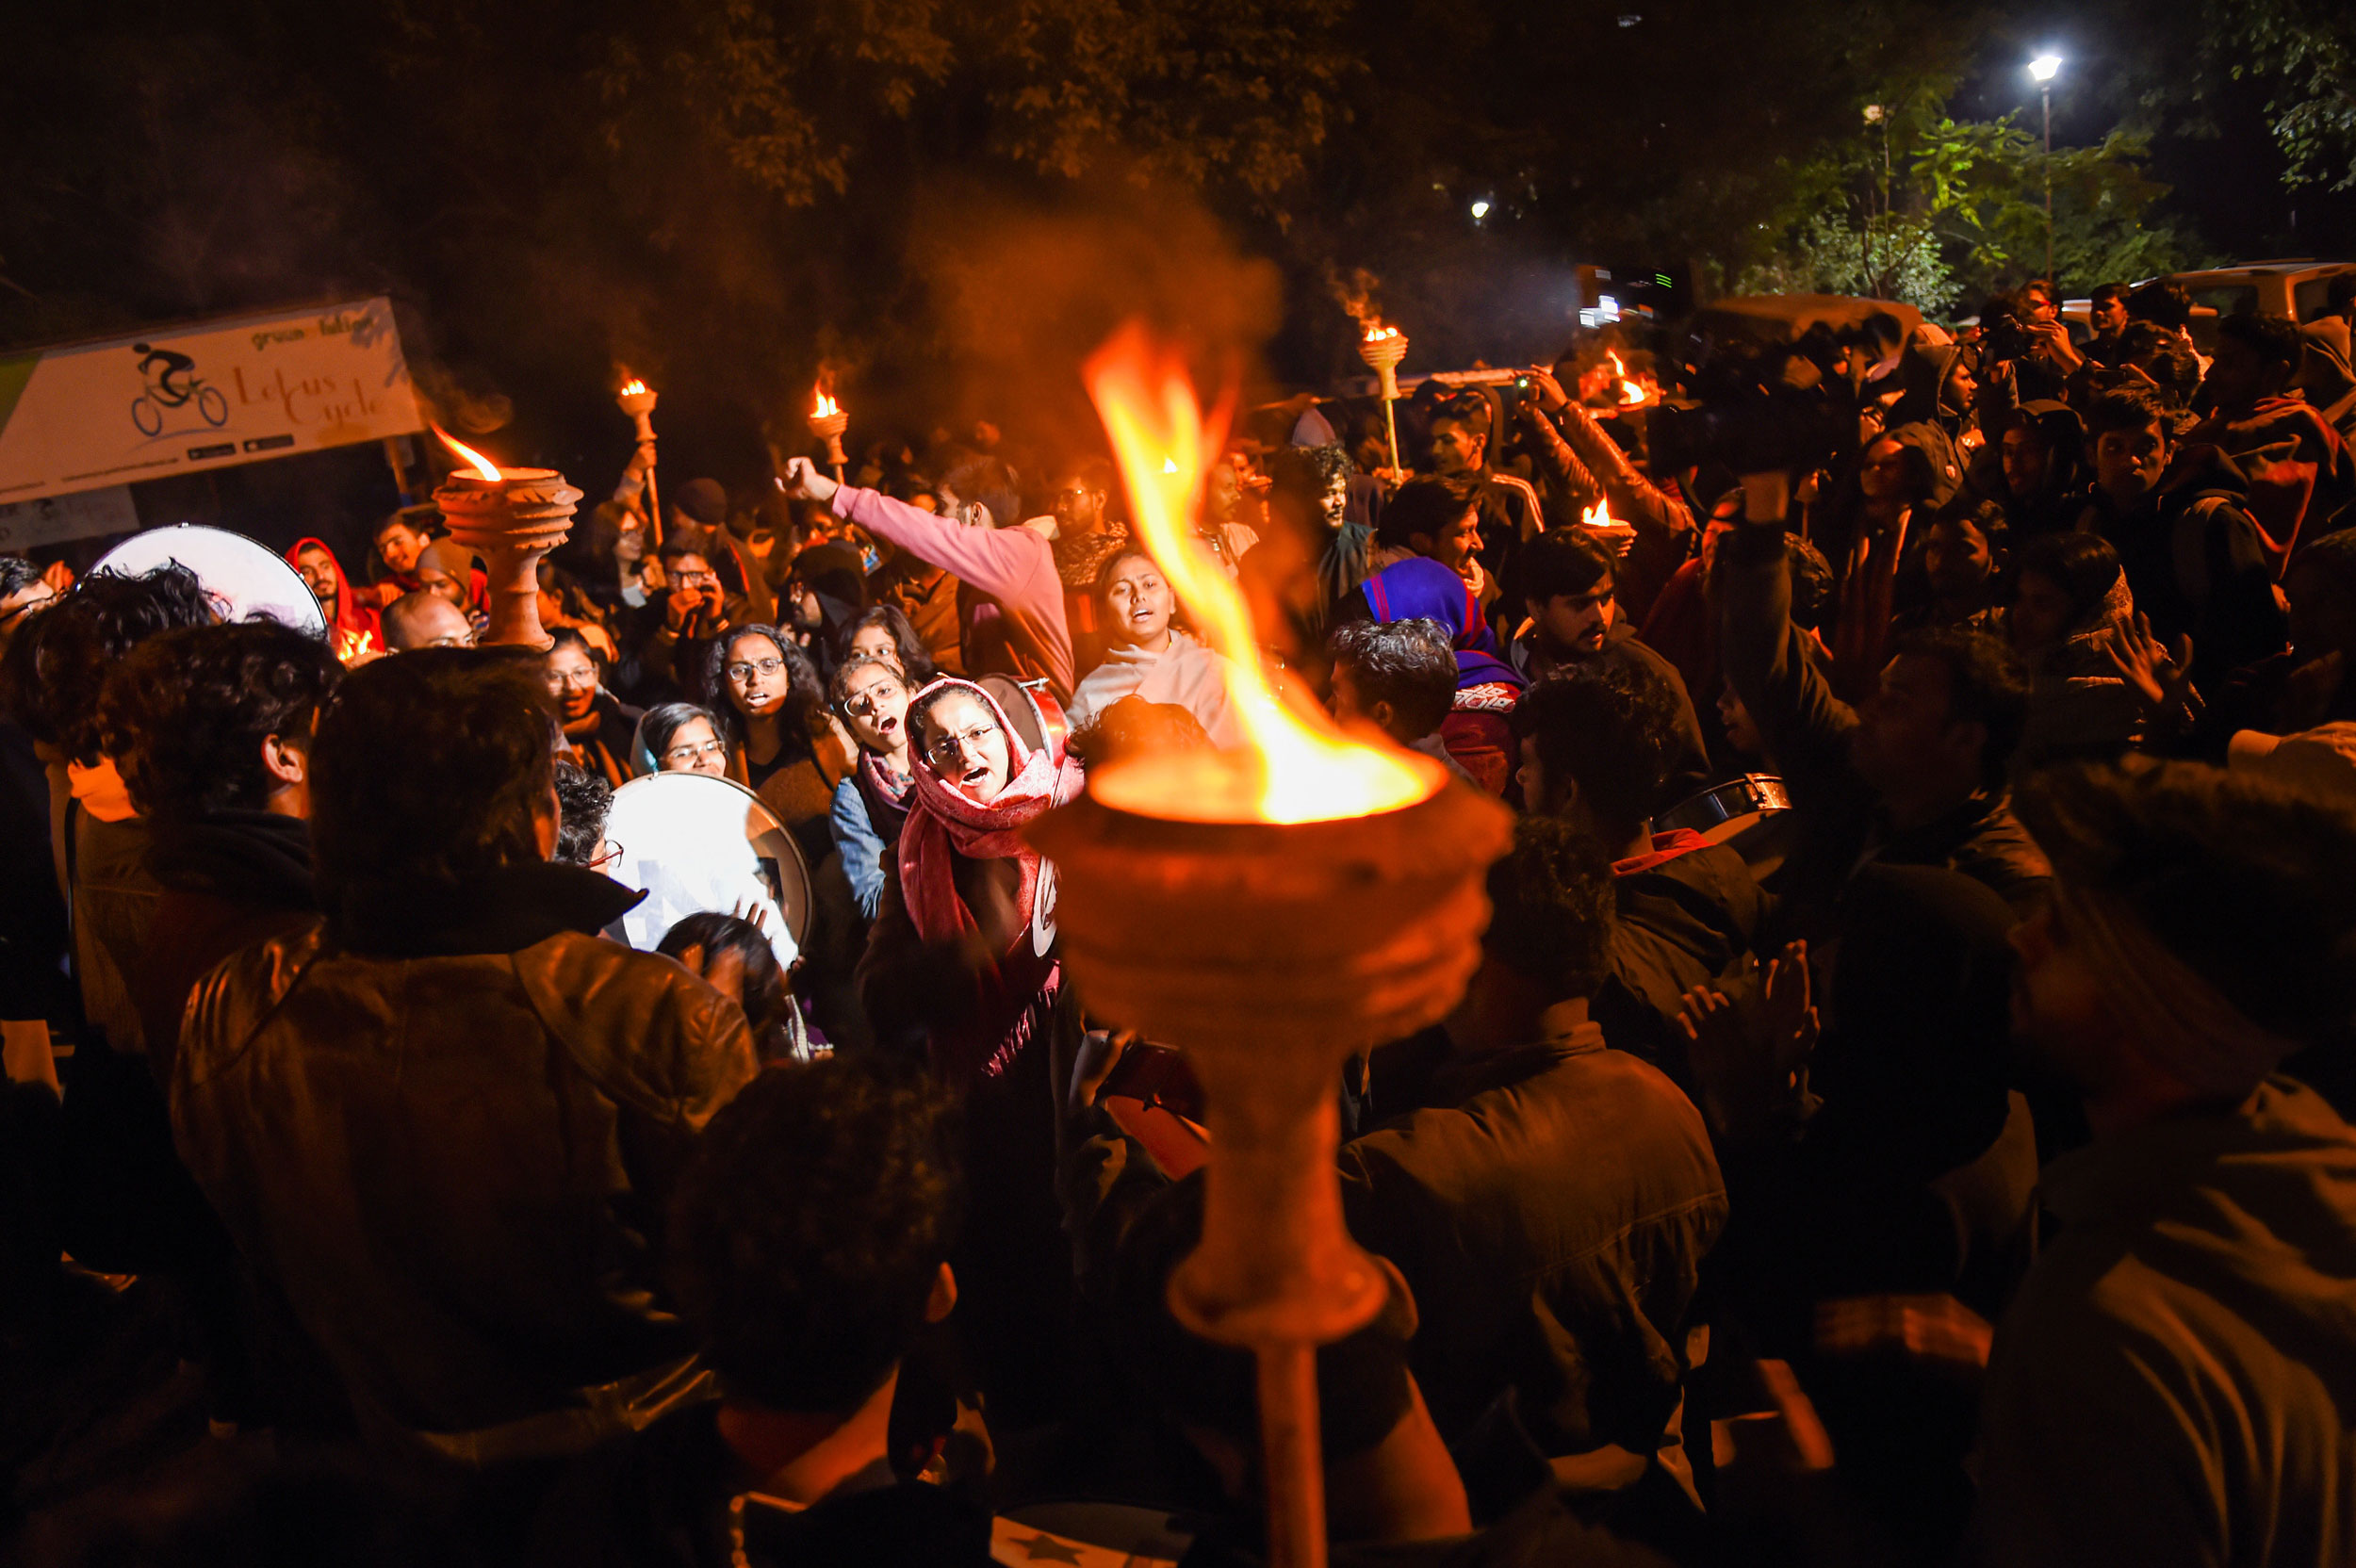 JNU students take part in a procession to protest against the proposed fee hike and IHA mannual on the university campus in New Delhi on December 3, 2019.